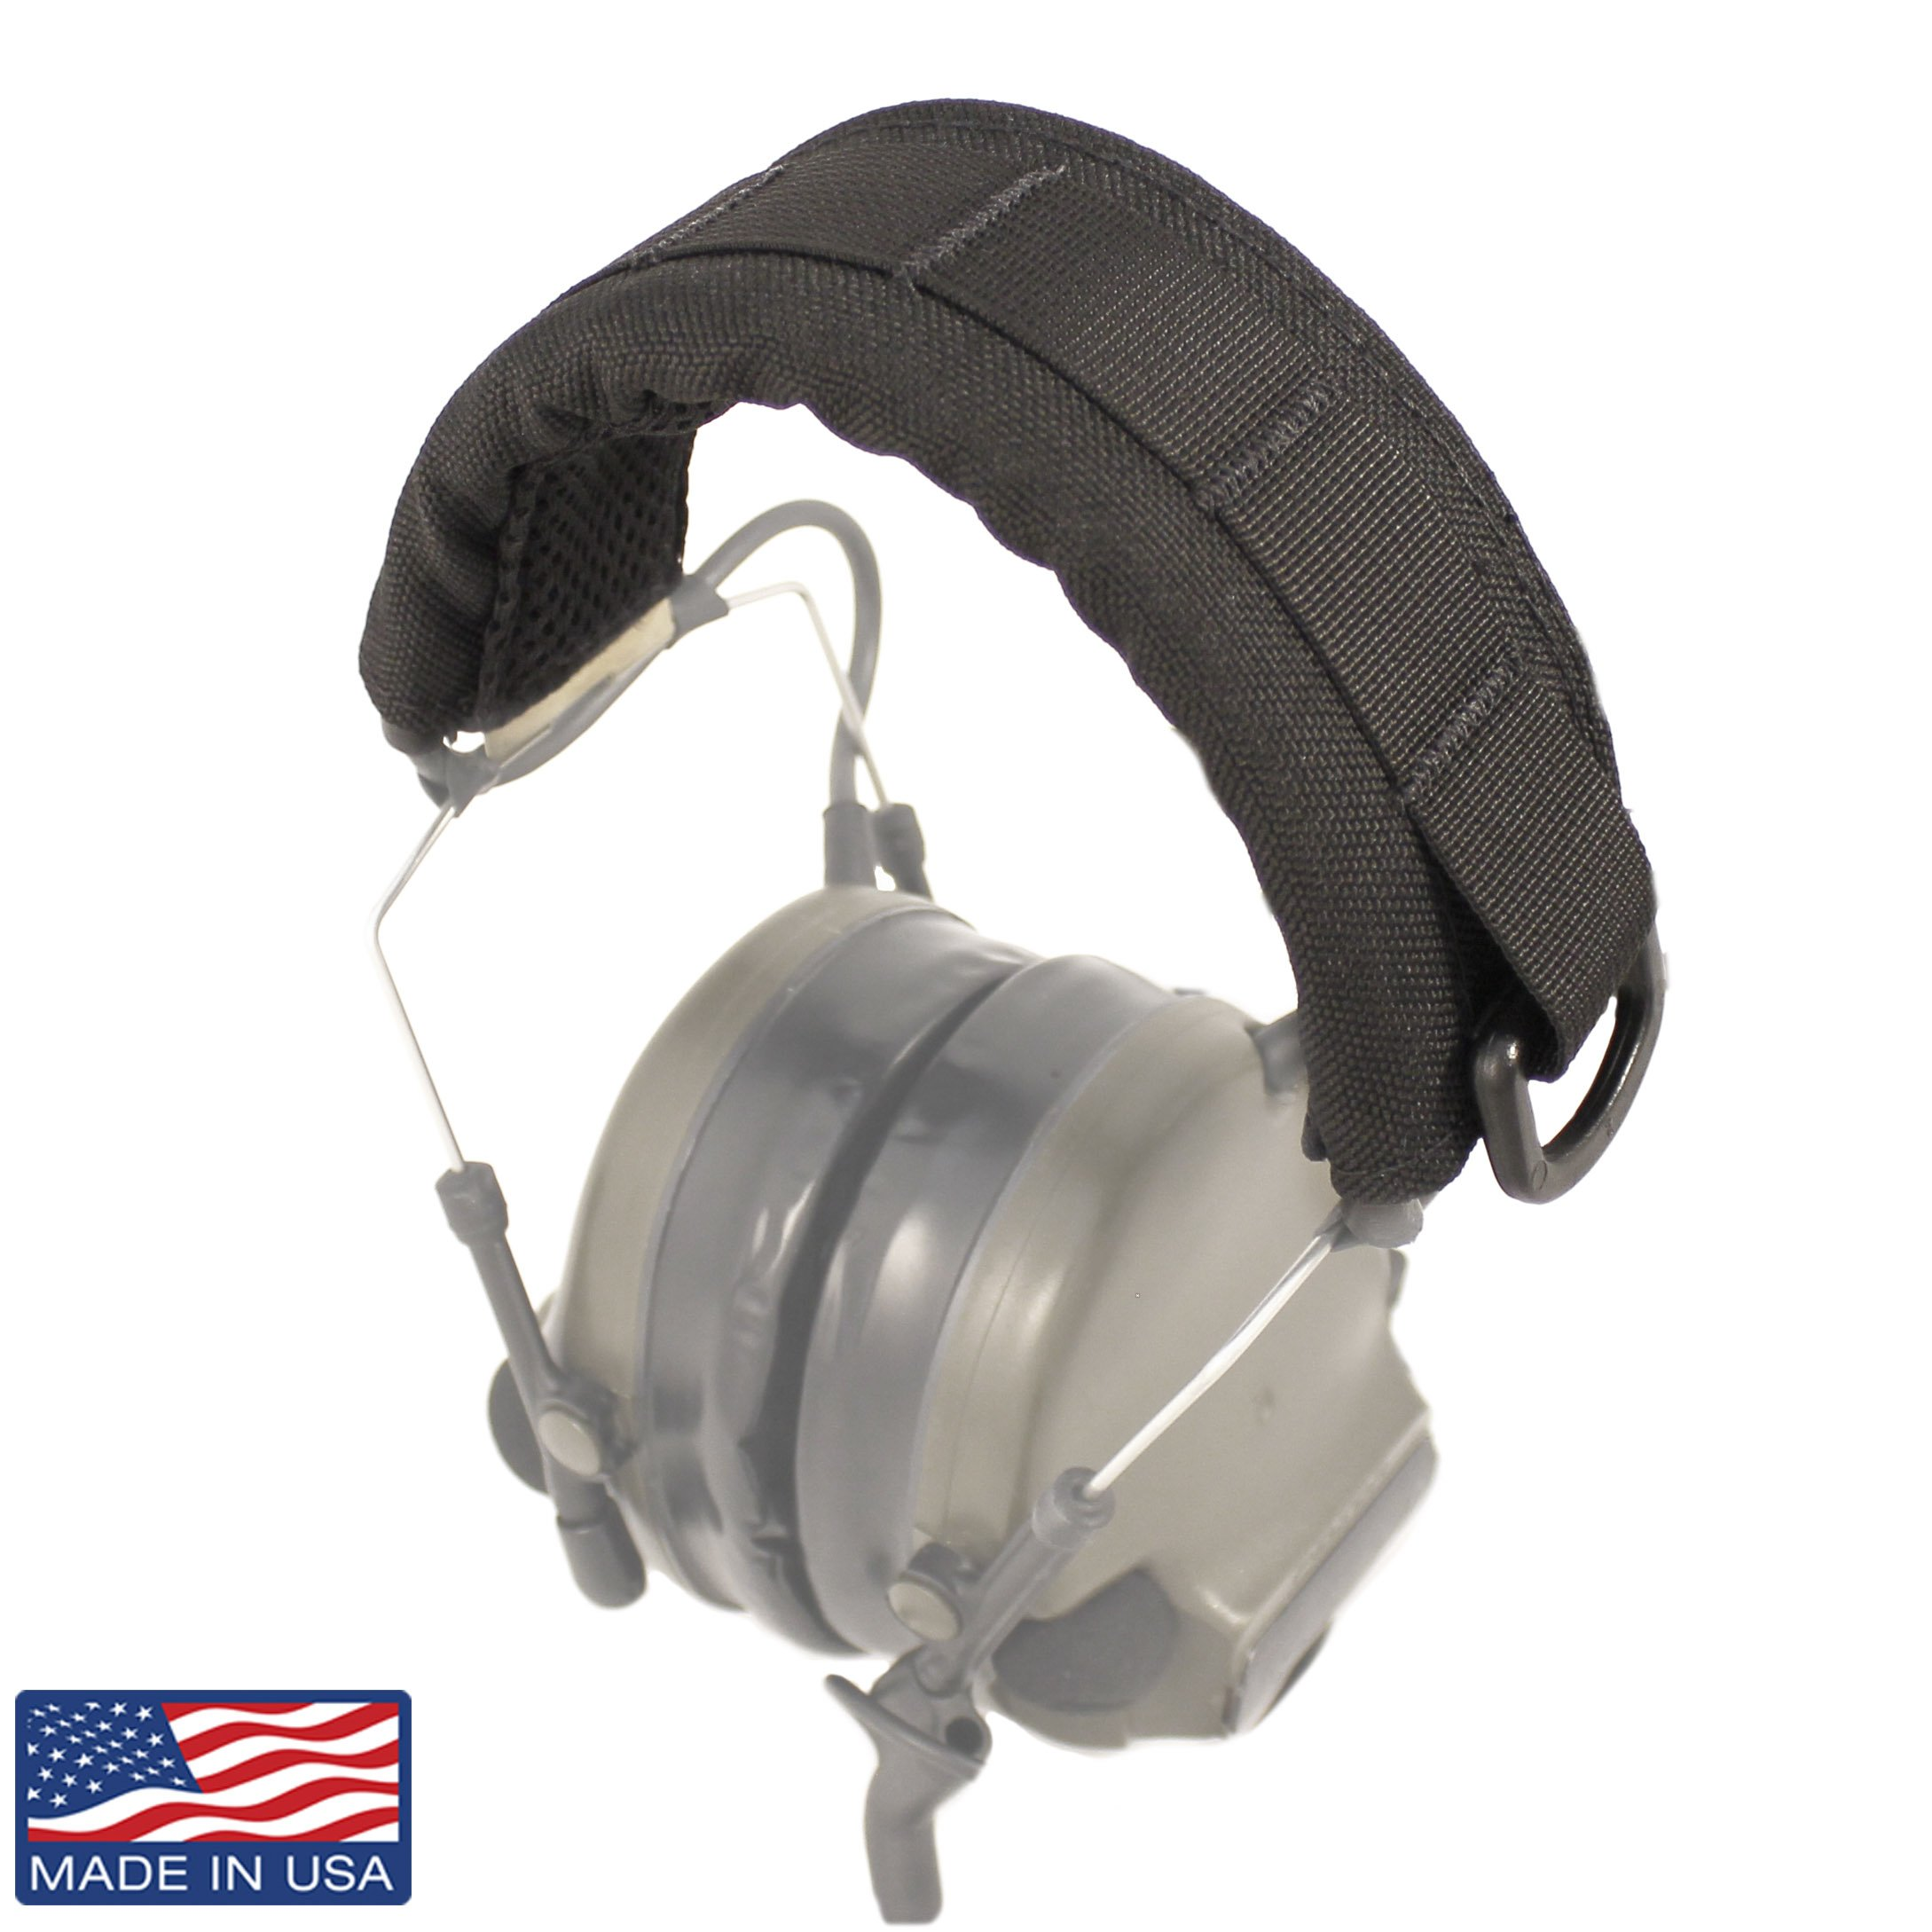 U.S. Tactical Sewing USTS Advanced Modular Headset Cover (Black) by U.S. Tactical Sewing